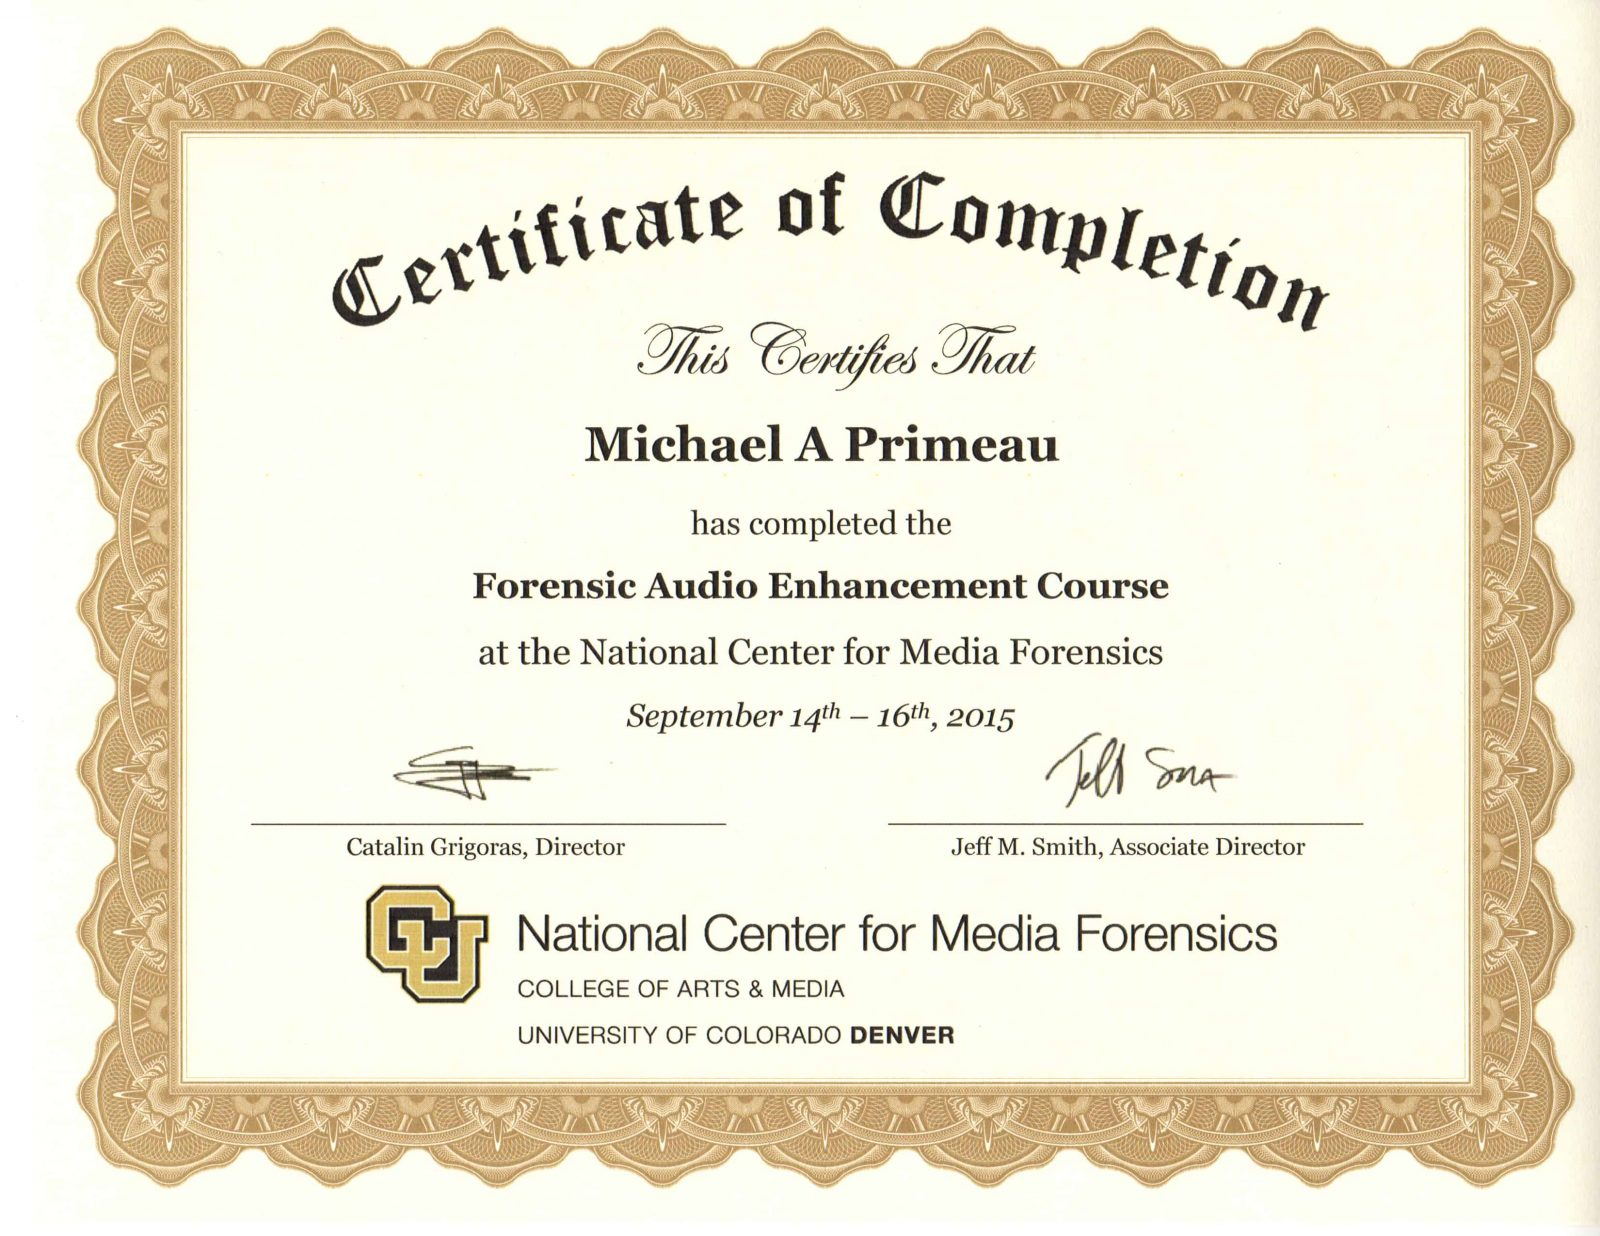 Forensic Audio Enhancement Mike Primeau